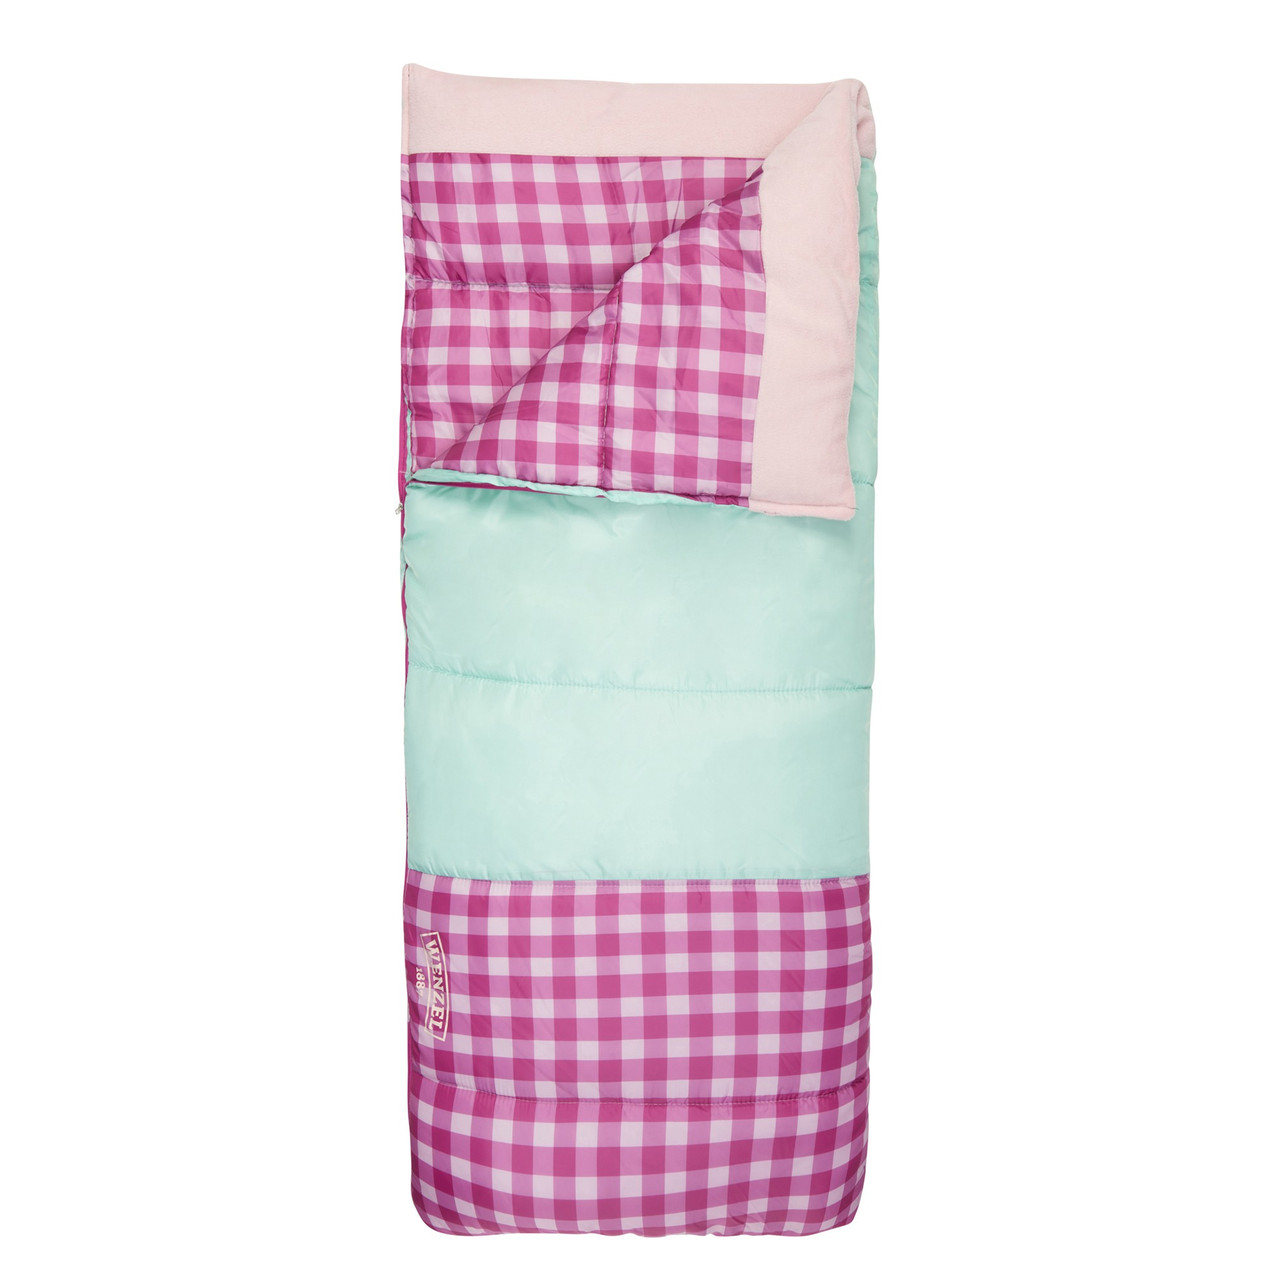 Wenzel Sapling Youth Sleeping Bag, pink, shown partially unzipped